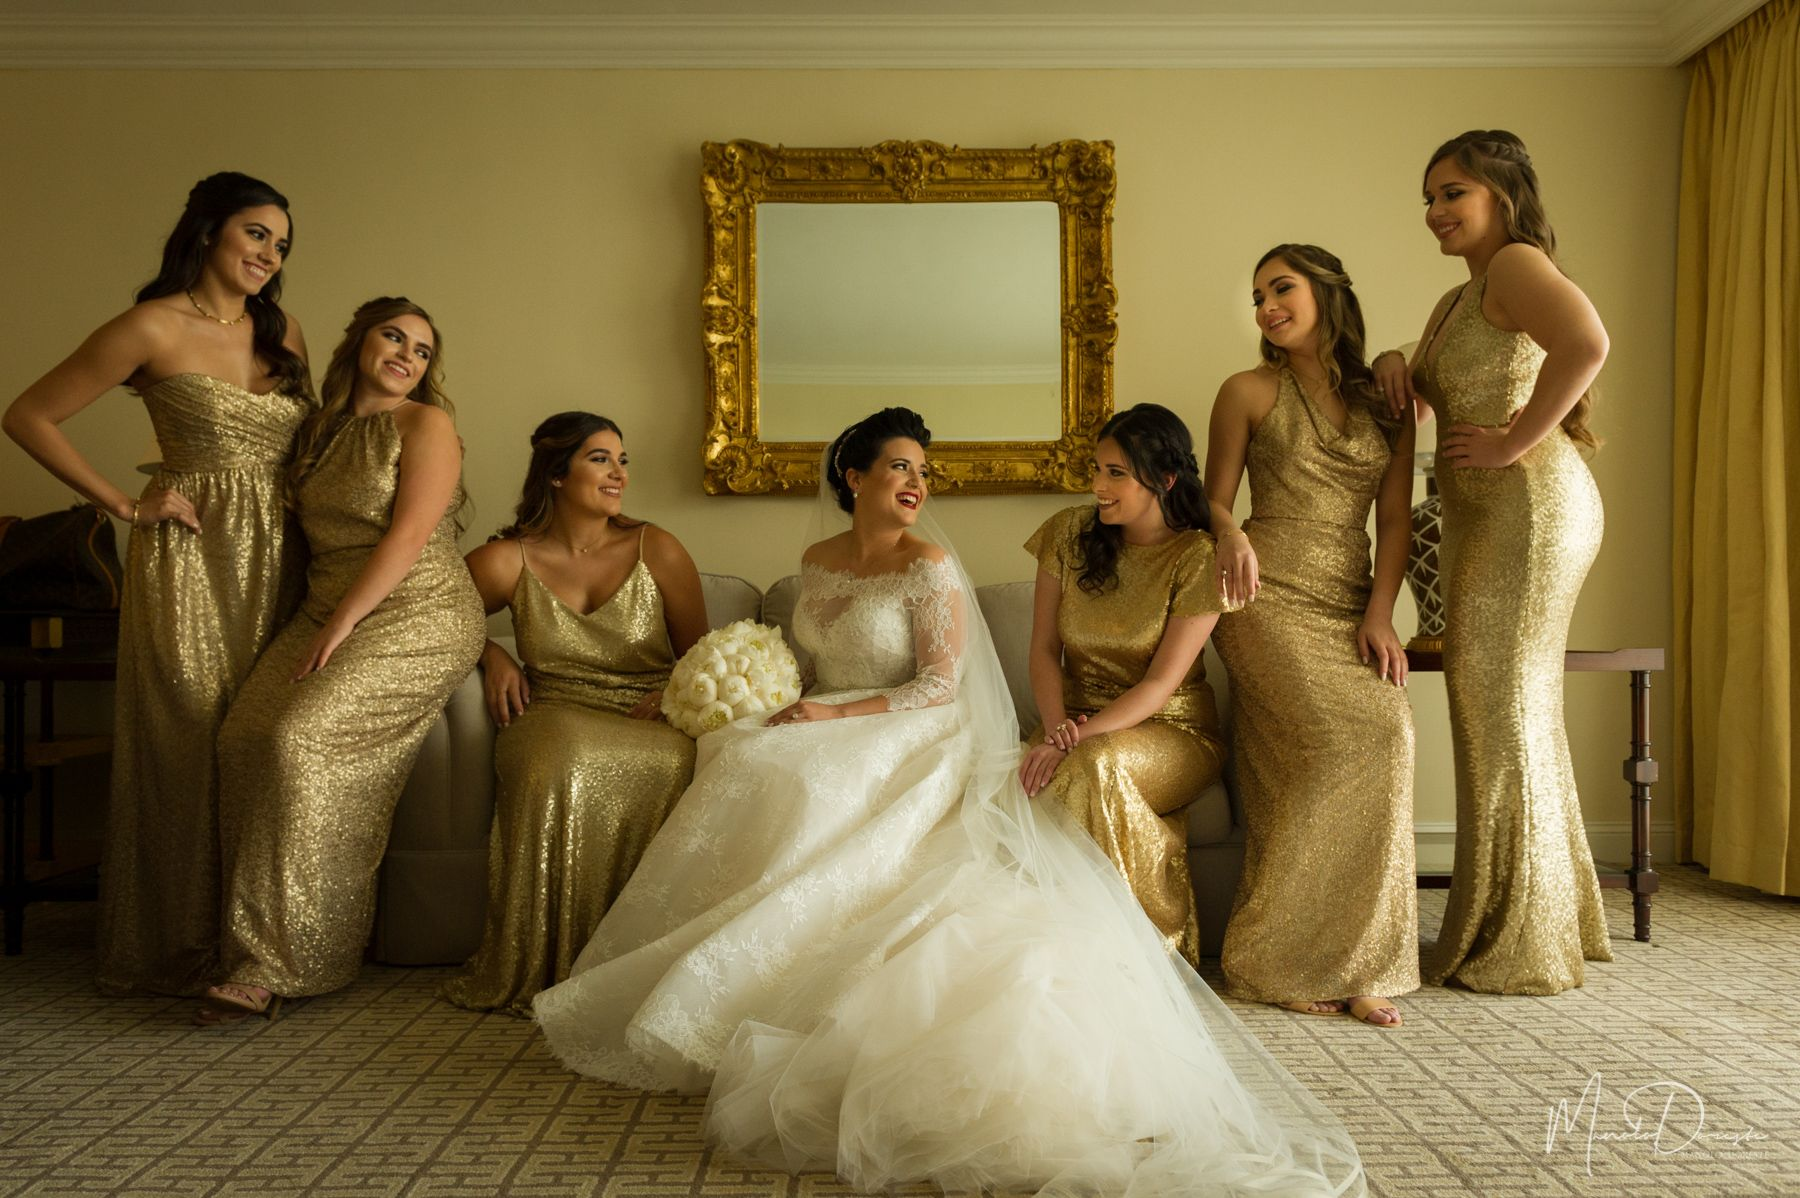 Gold bridesmaids dresses and beautiful bridal gown wedding at gold bridesmaids dresses and beautiful bridal gown wedding at trump national doral miami ombrellifo Image collections